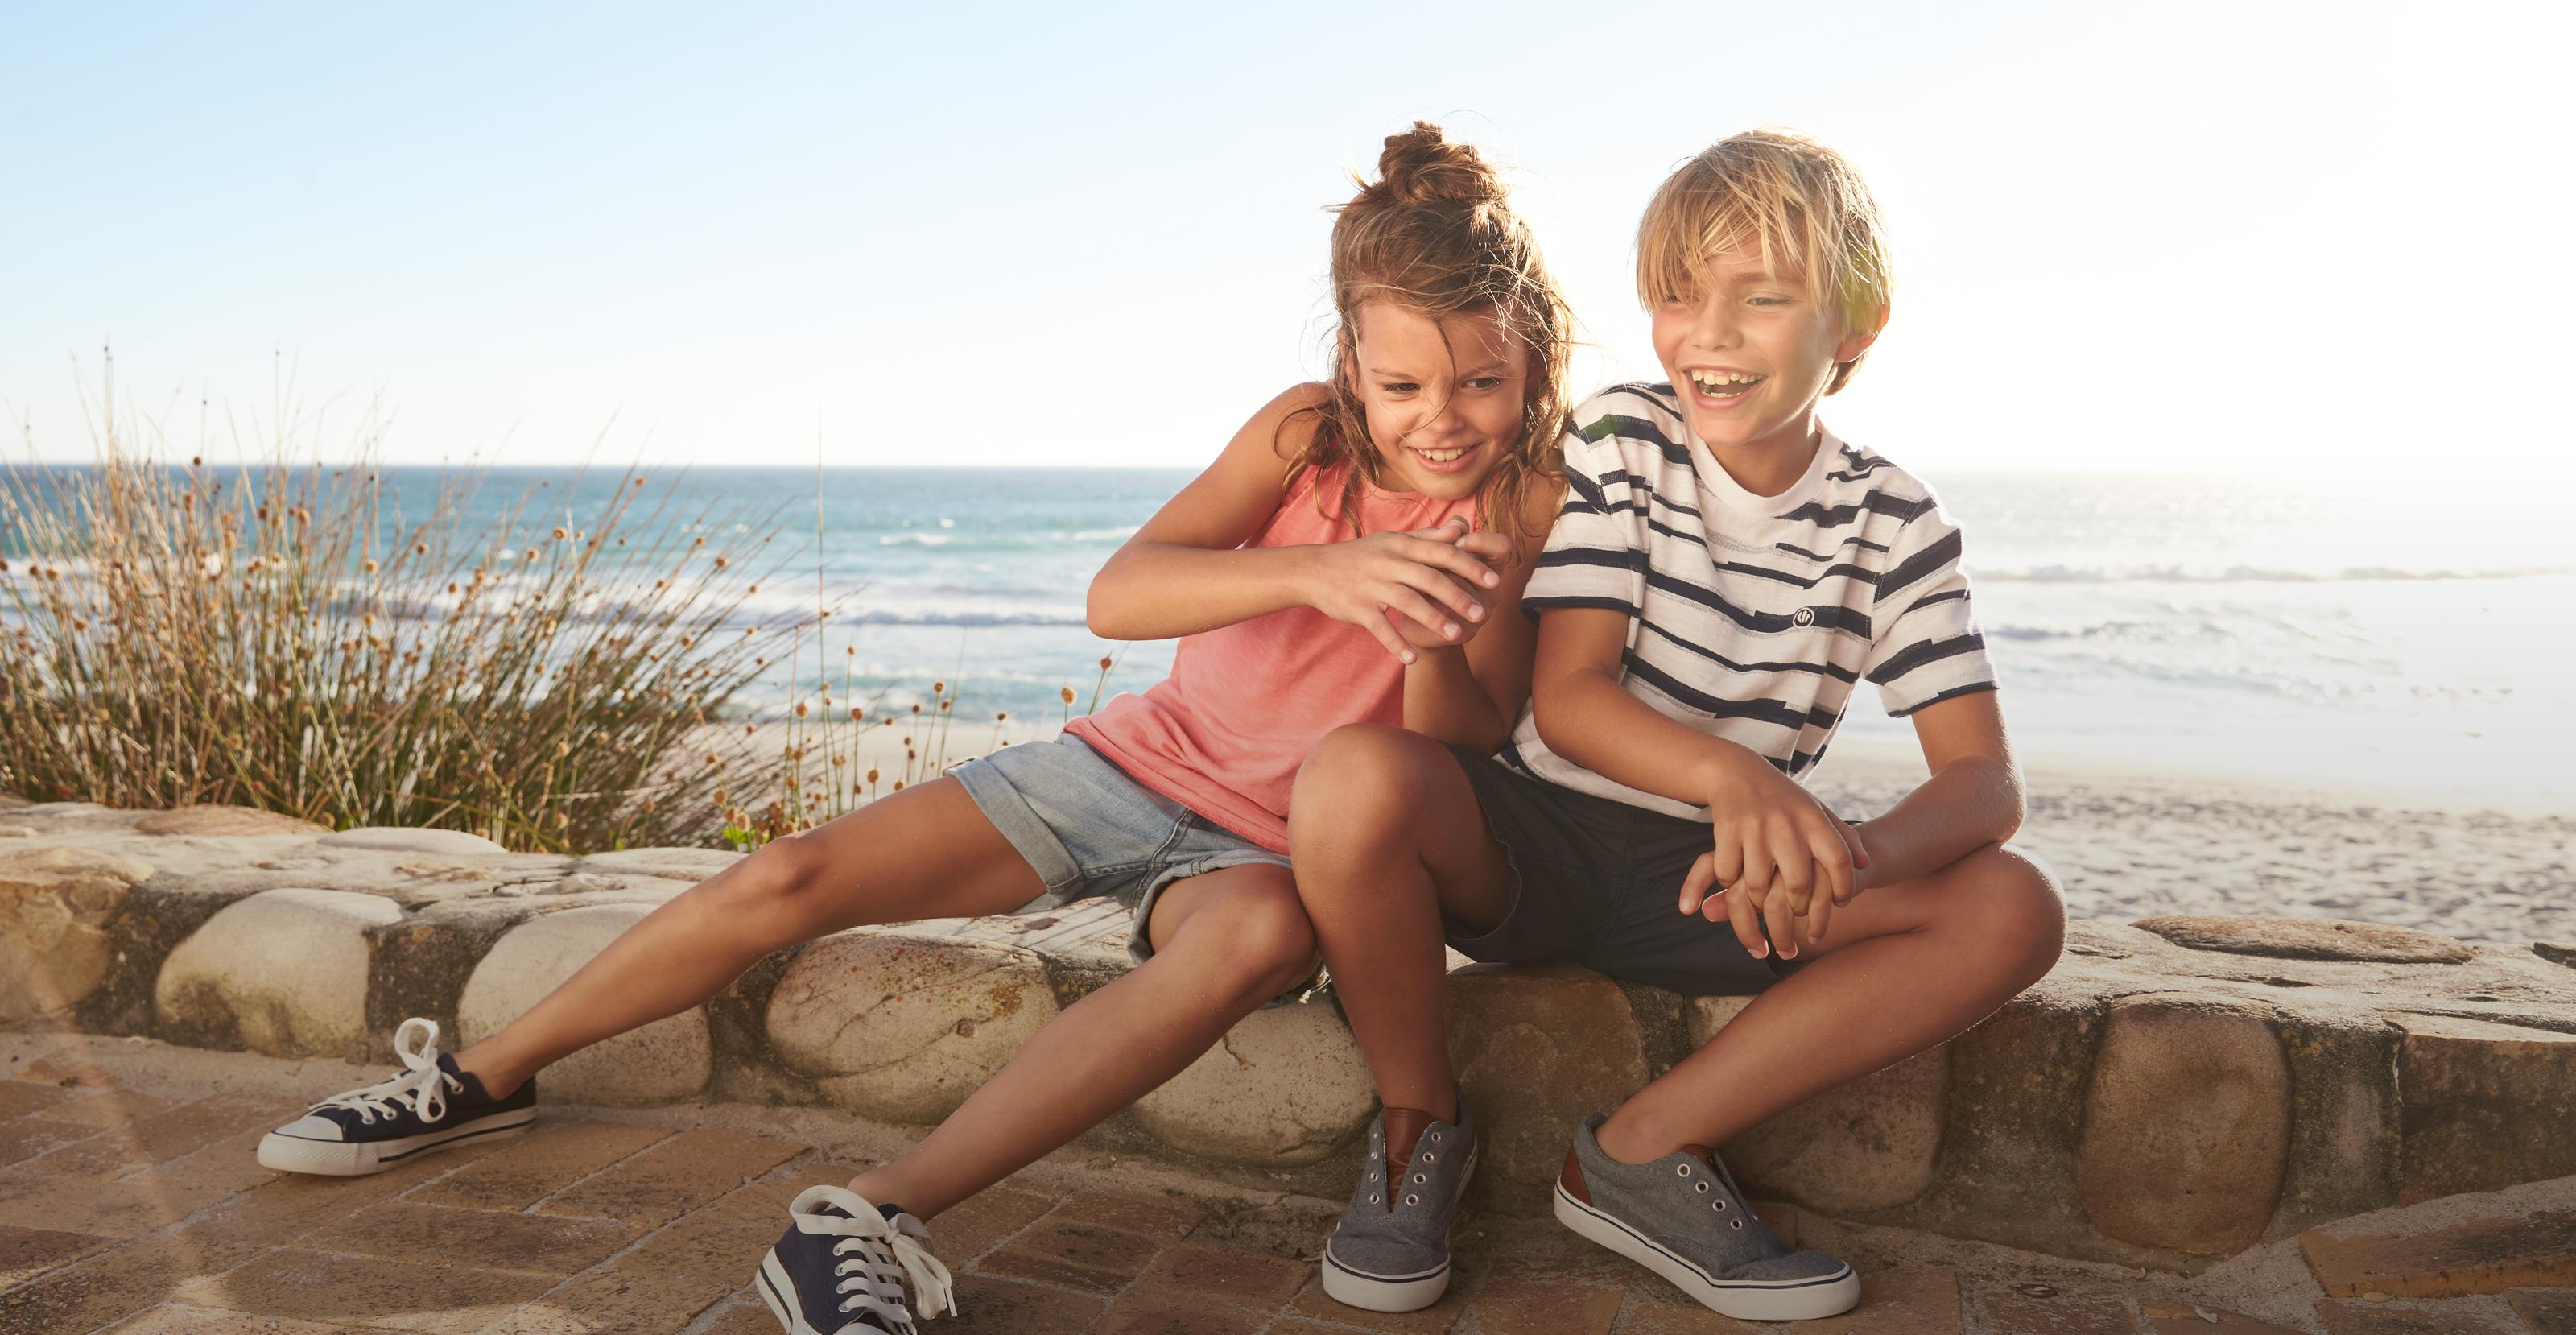 Image of a girl and boy model. The girl is wearing a pink top with blue shorts and the boy is wear a white and blue stripe tee with shorts